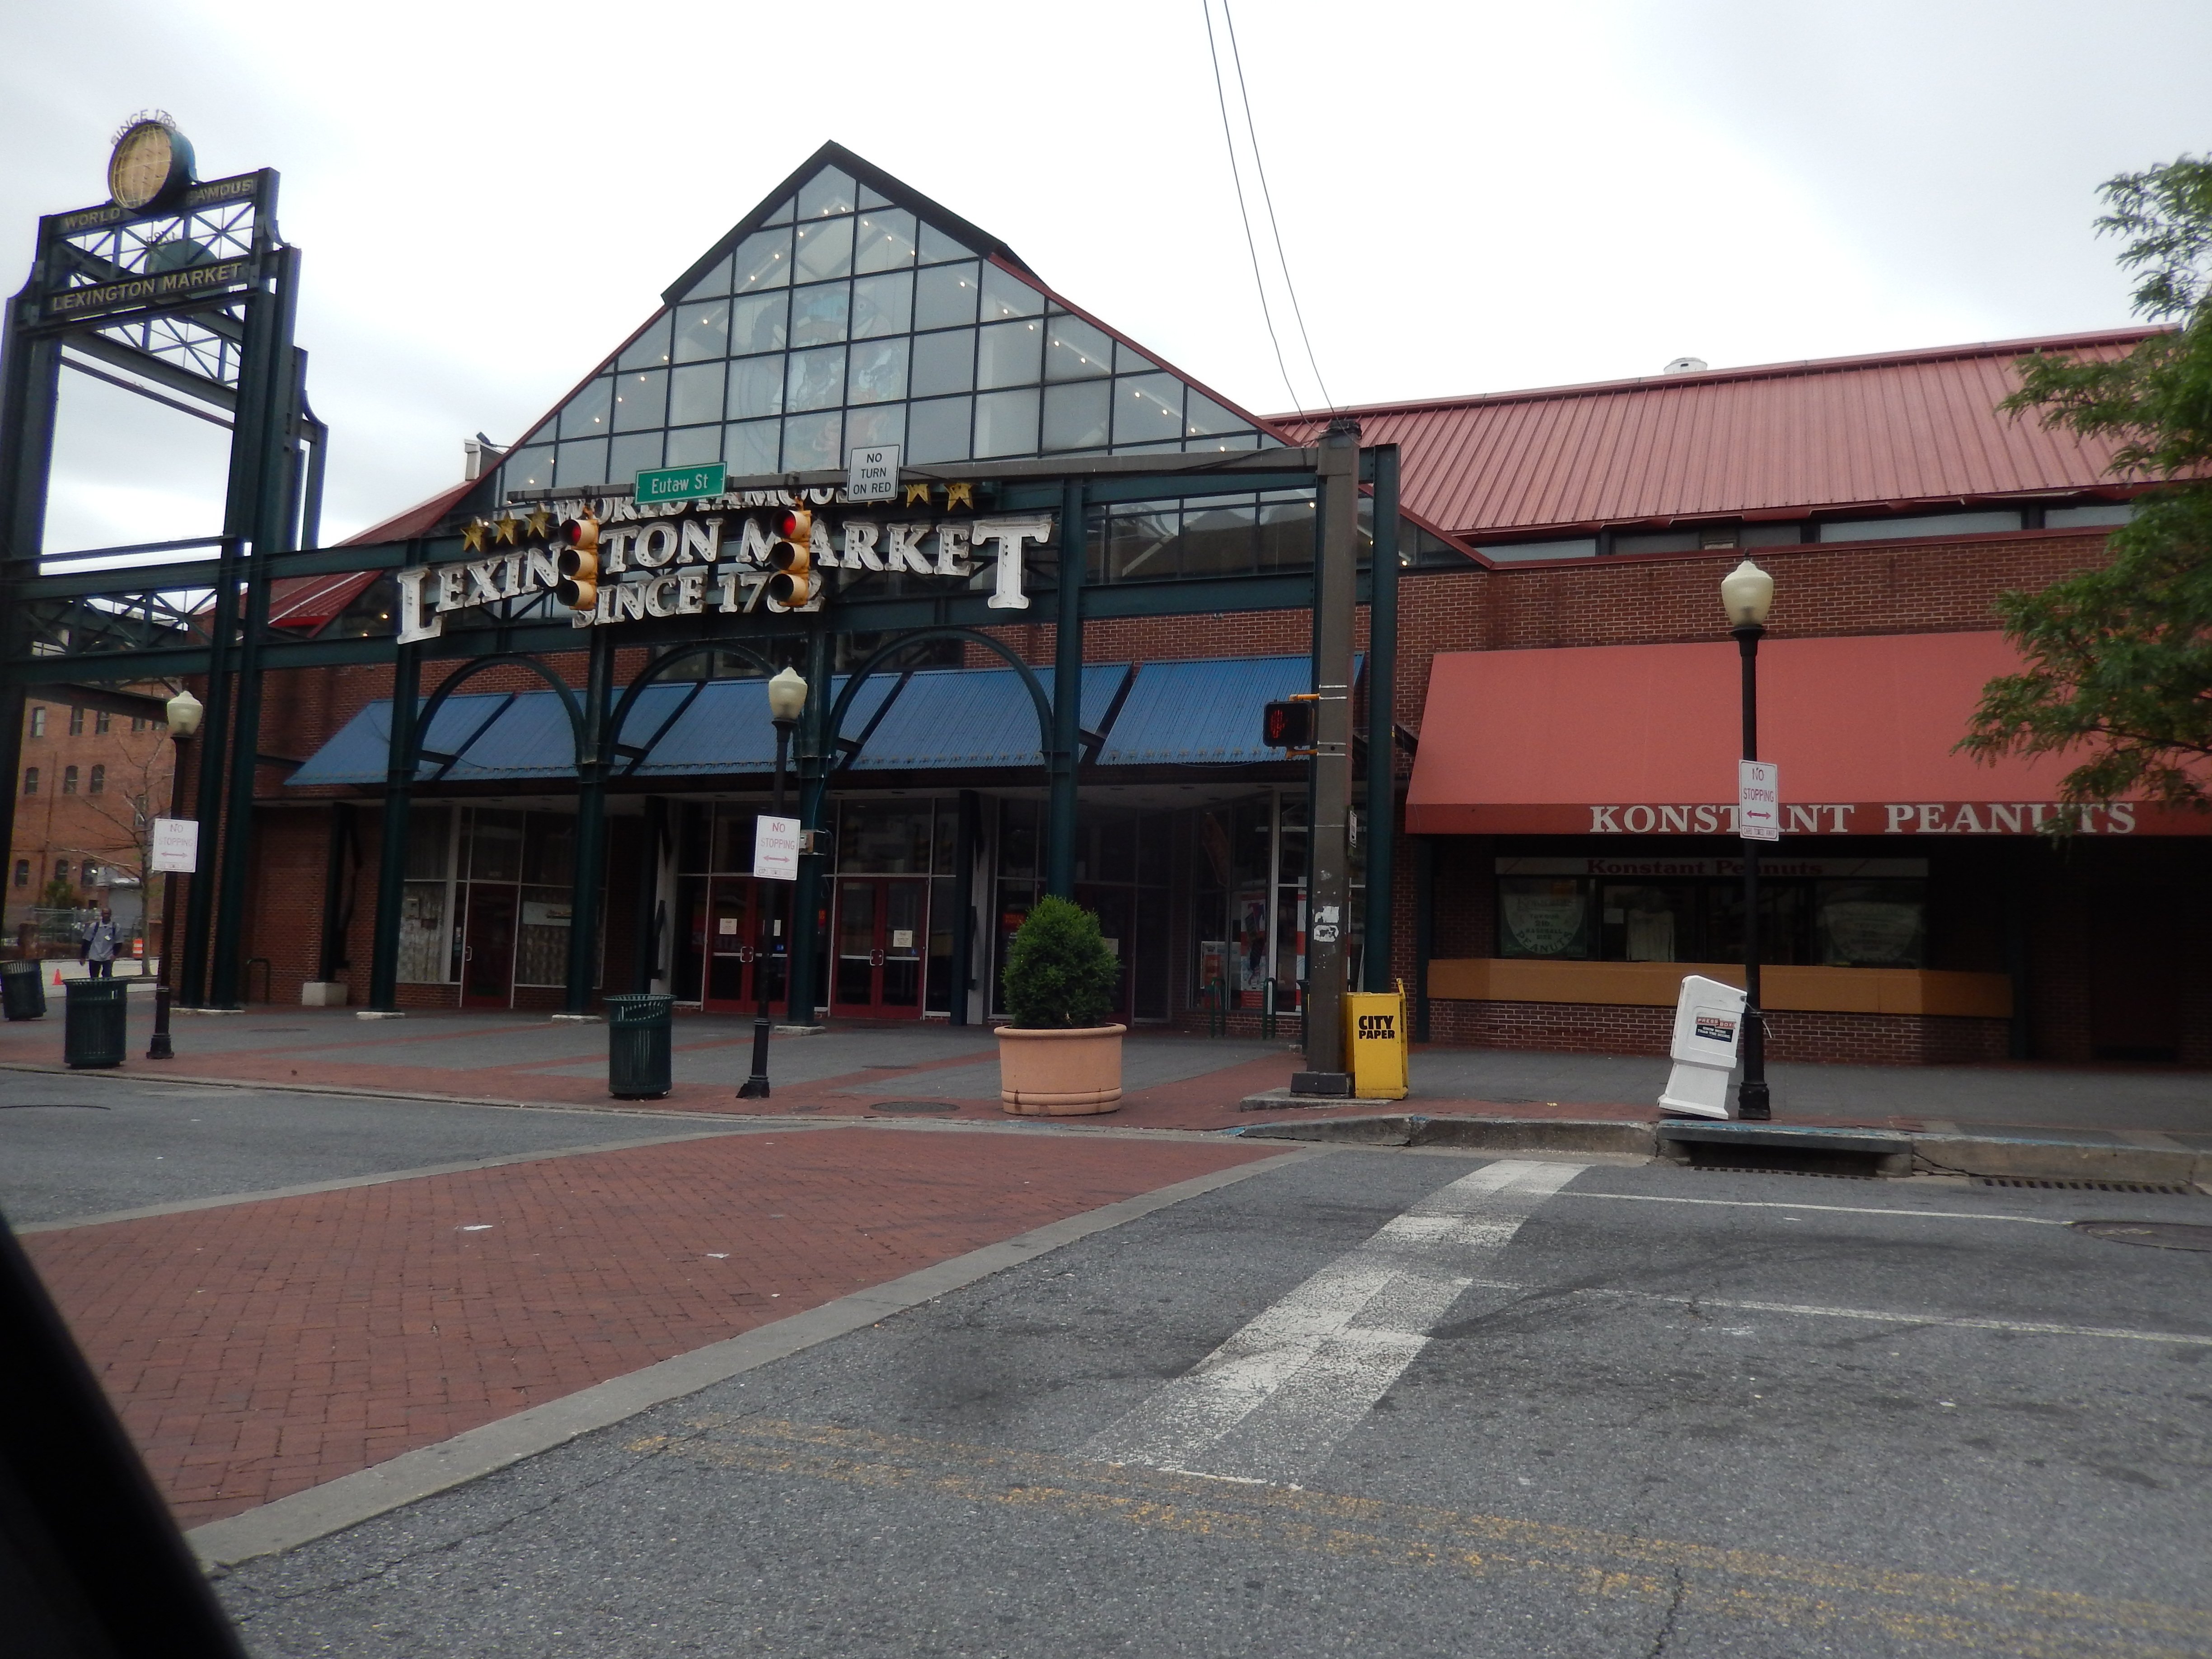 Lexington Market-left entrance